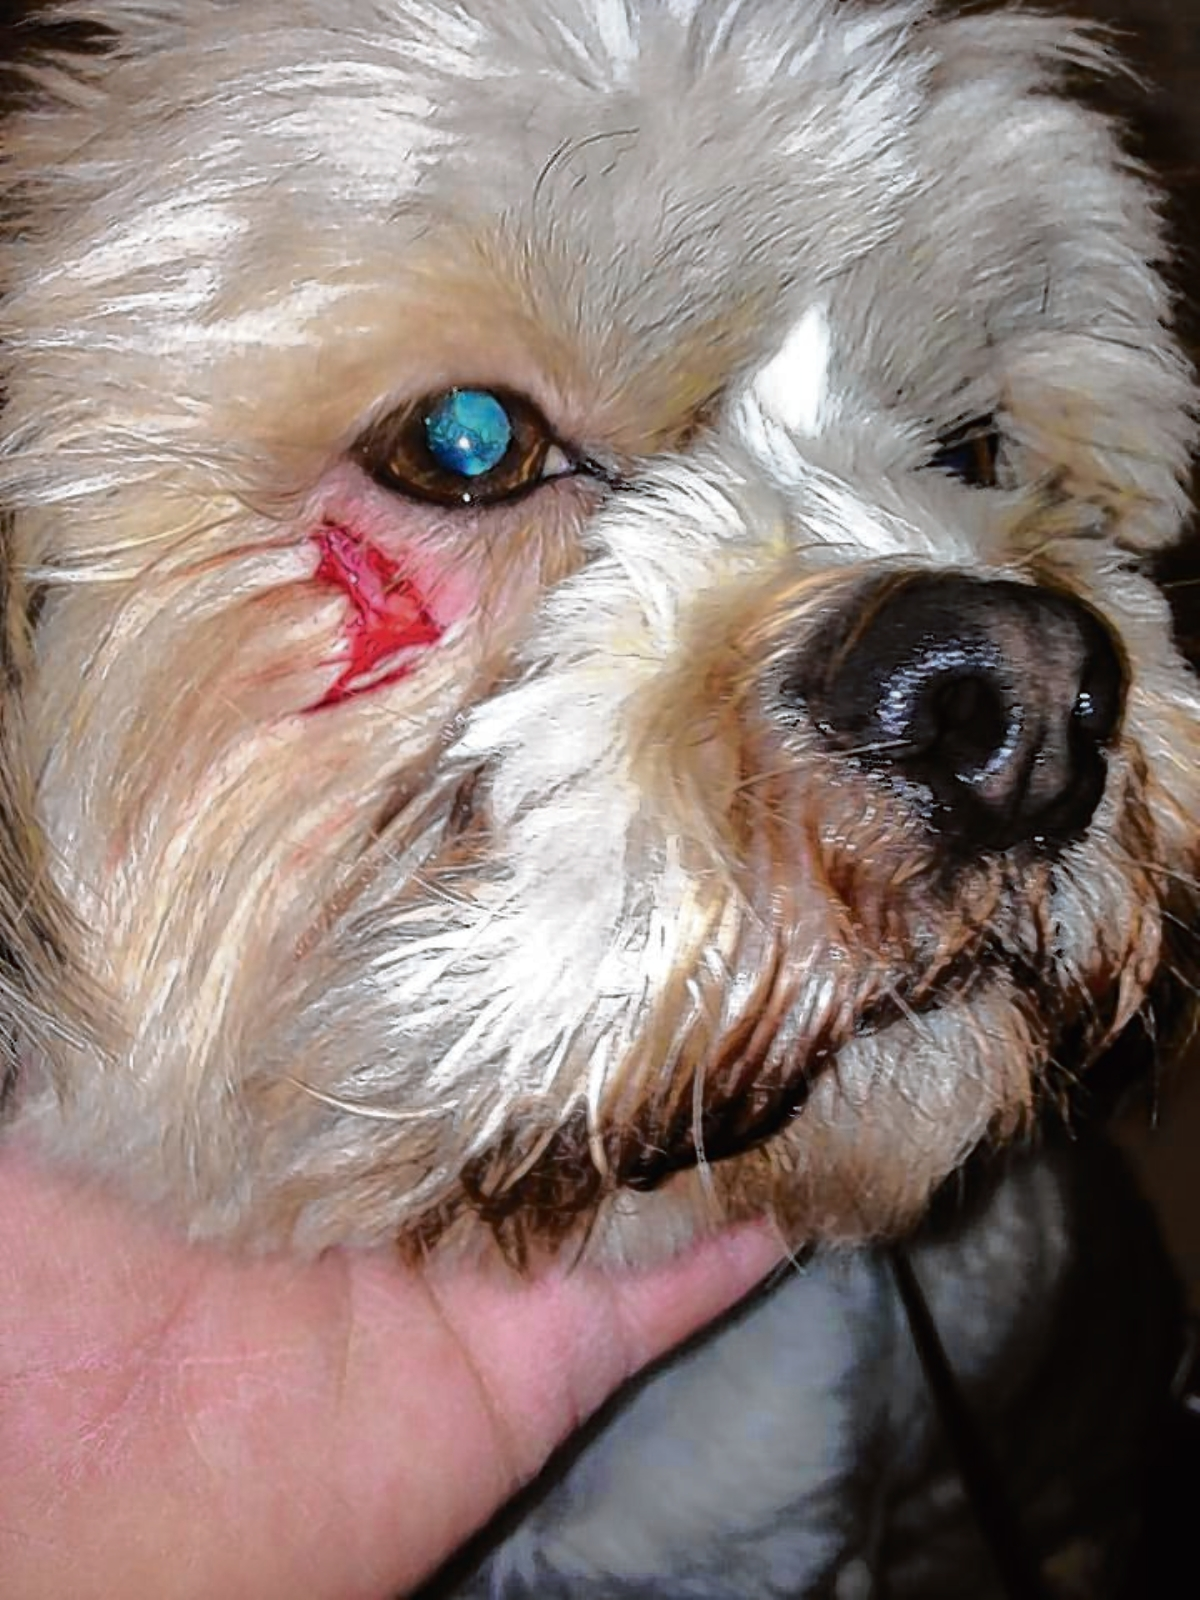 Braintree: Dog attack has ruined Christmas, says disabled pet owner